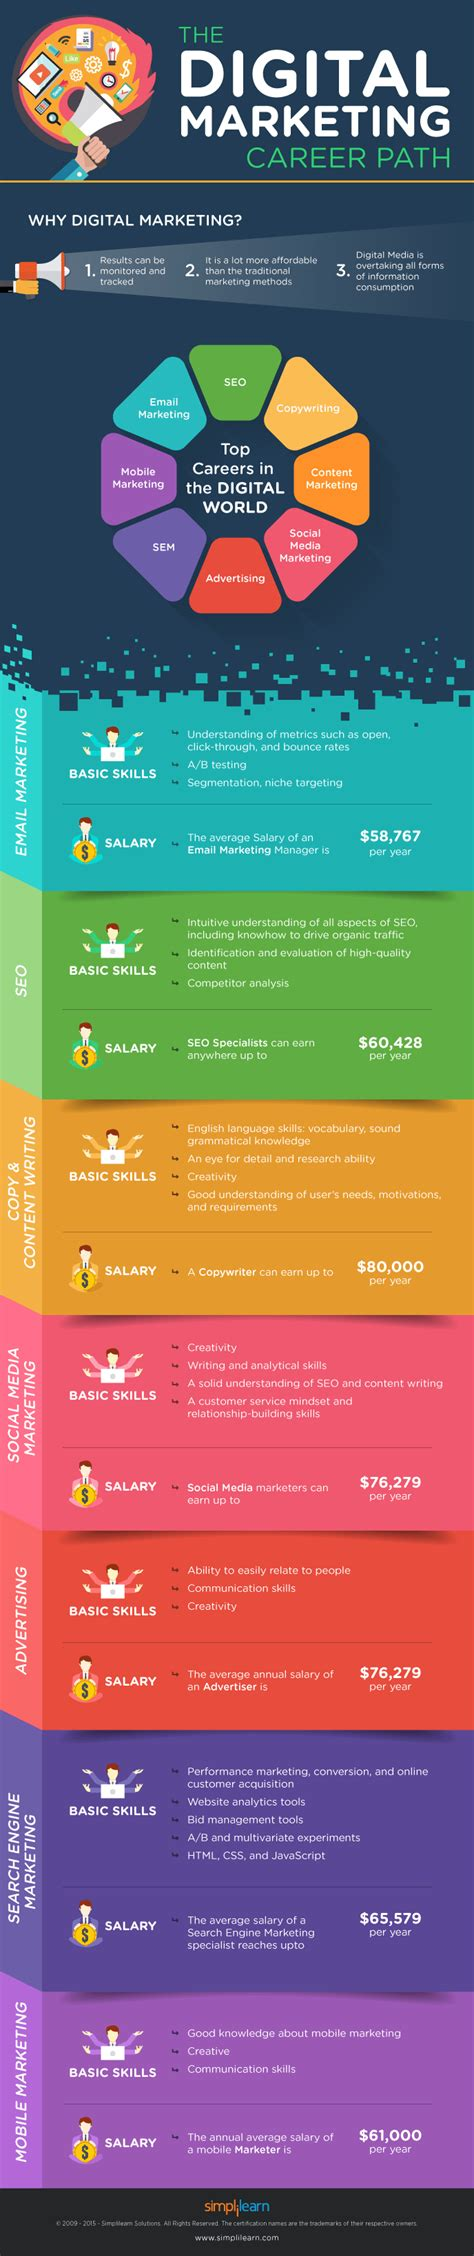 11703 career path infographic how to launch a stellar career in digital marketing